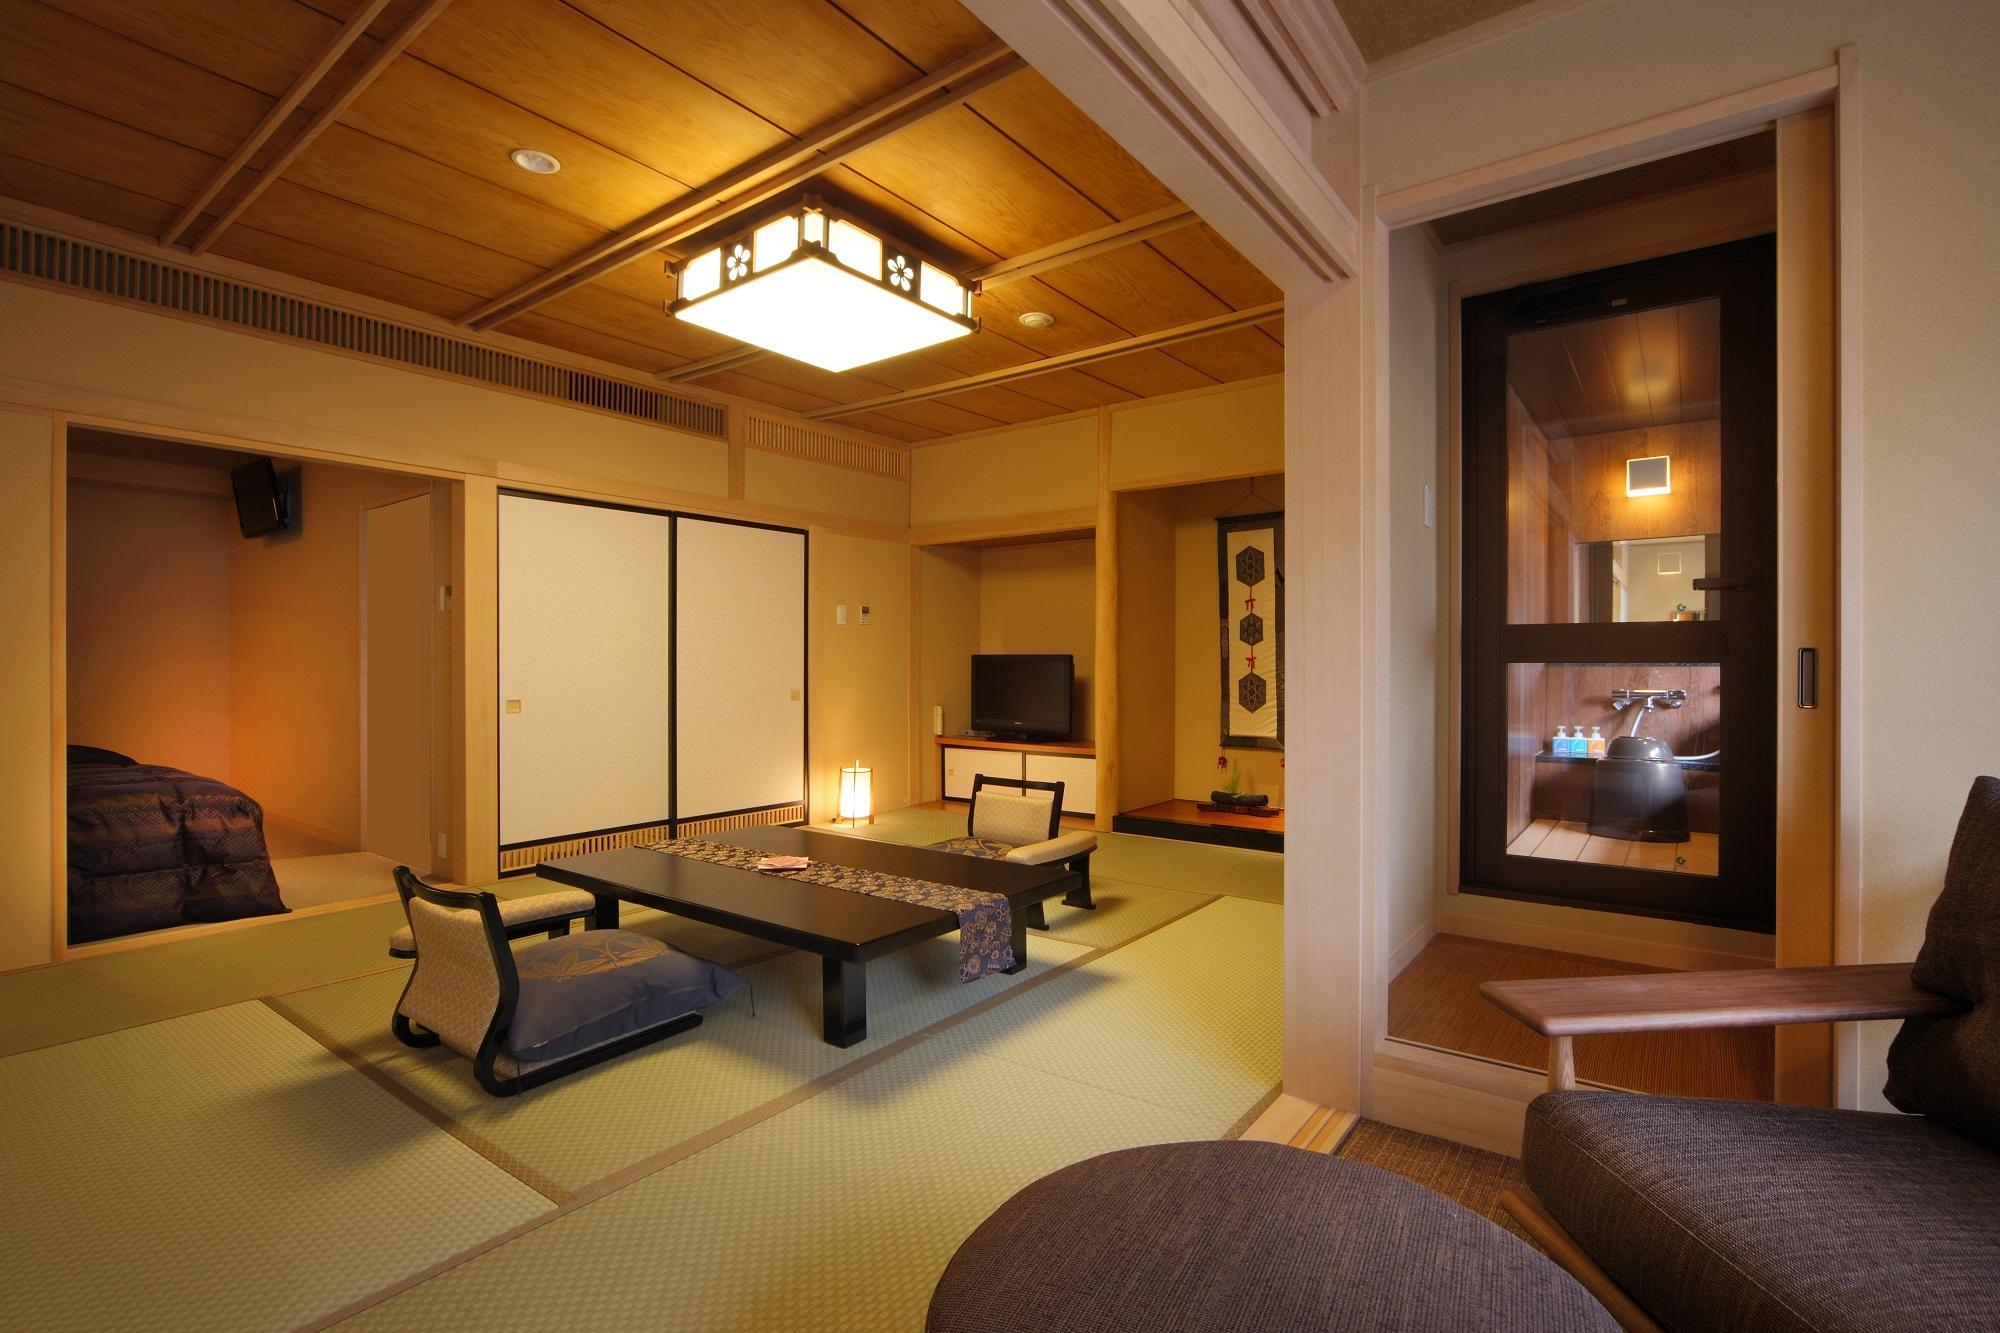 Hachibankan Japanese Western Style Room with River View Bath - Non-Smoking